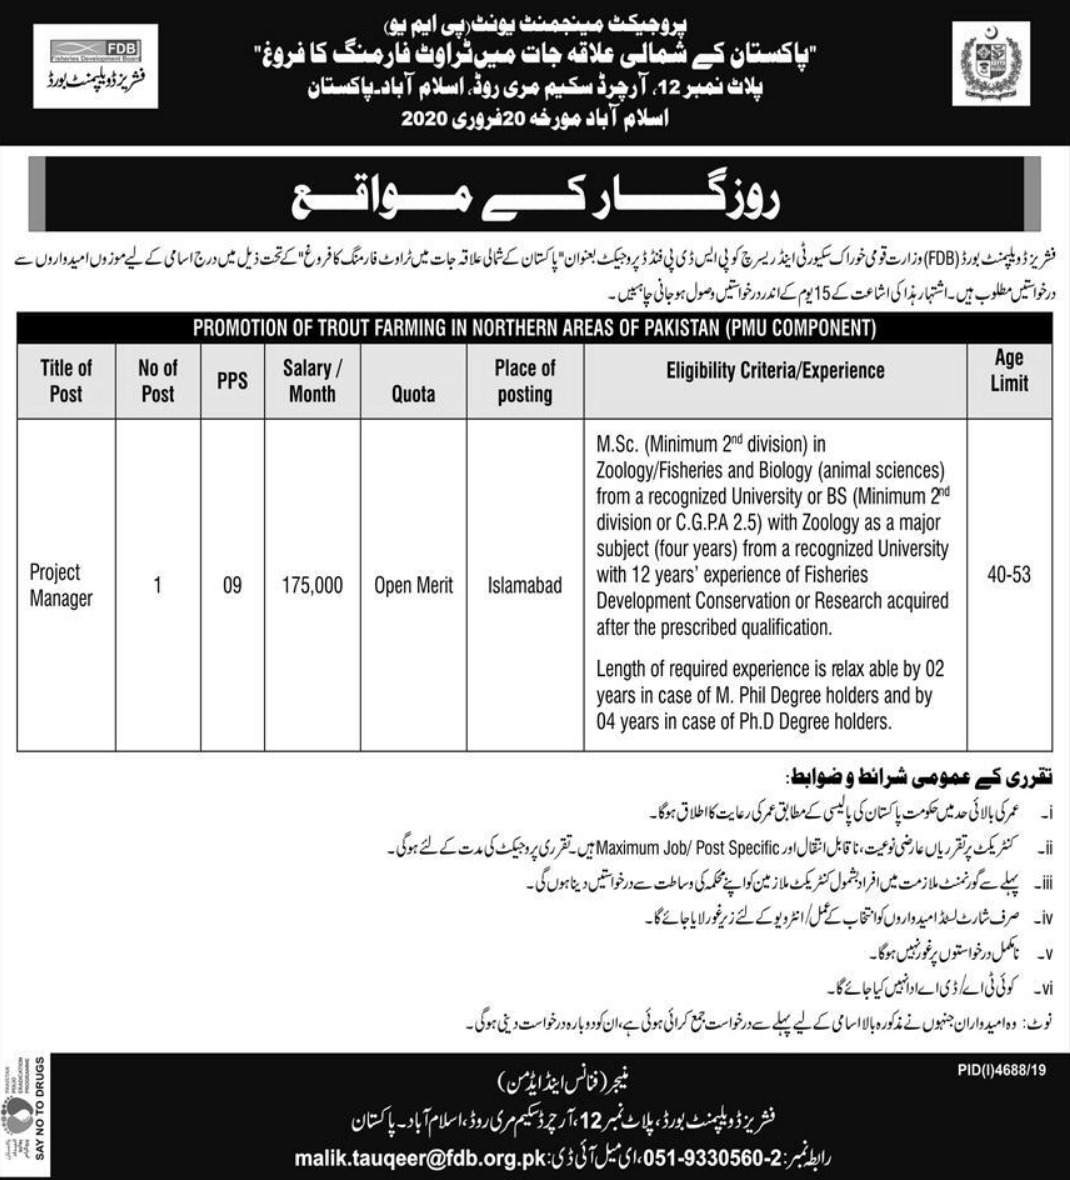 Ministry of National Food Security & Research Jobs 2020 FDB Pakistan